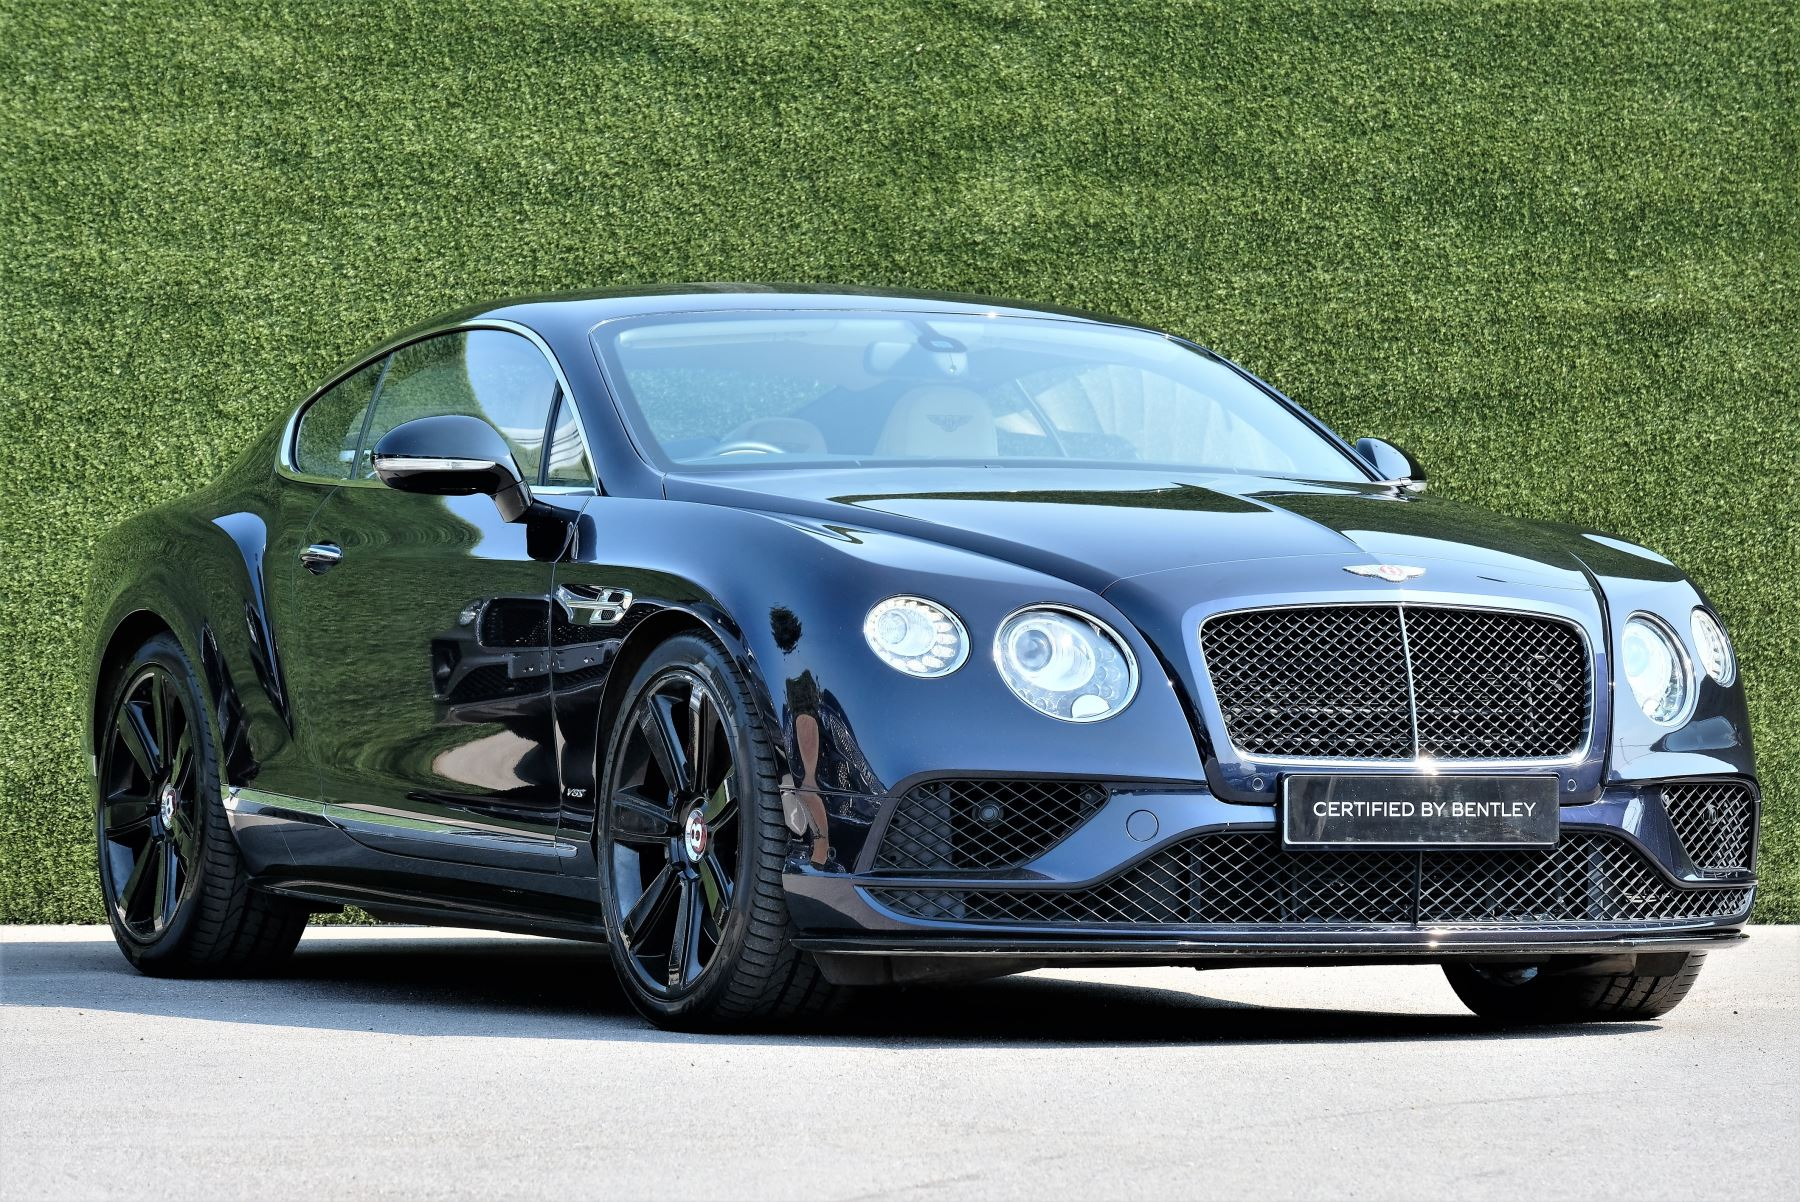 Bentley Continental GT V8 S Coupe 4.0 V8 S 2dr Auto Mulliner Driving Specification image 1